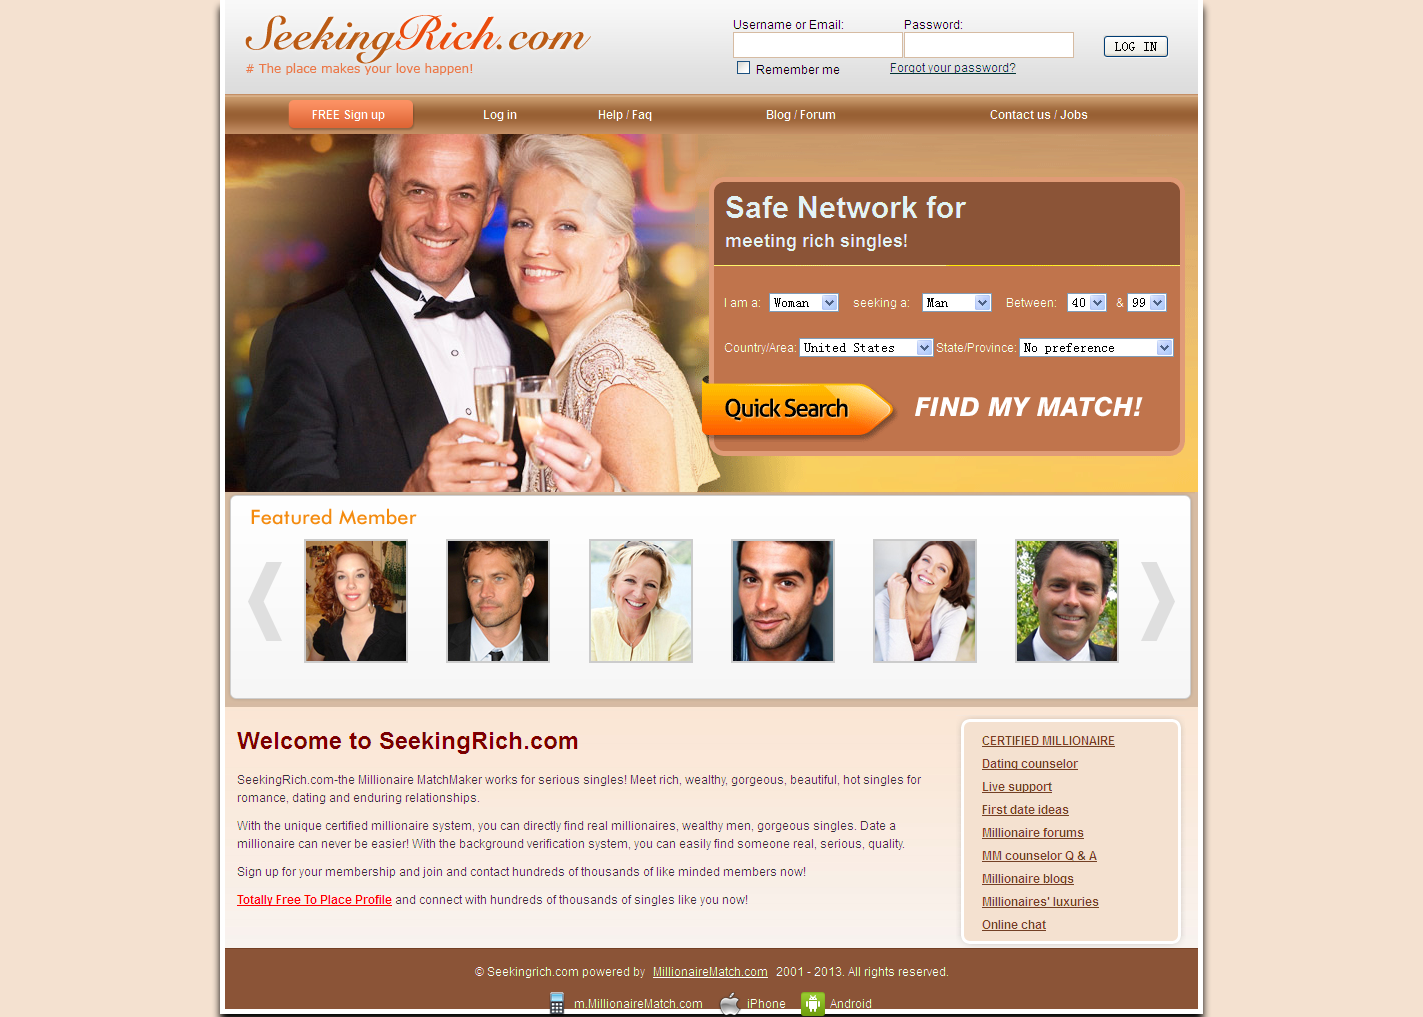 niobe singles dating site Search the world's information, including webpages, images, videos and more google has many special features to help you find exactly what you're looking for.